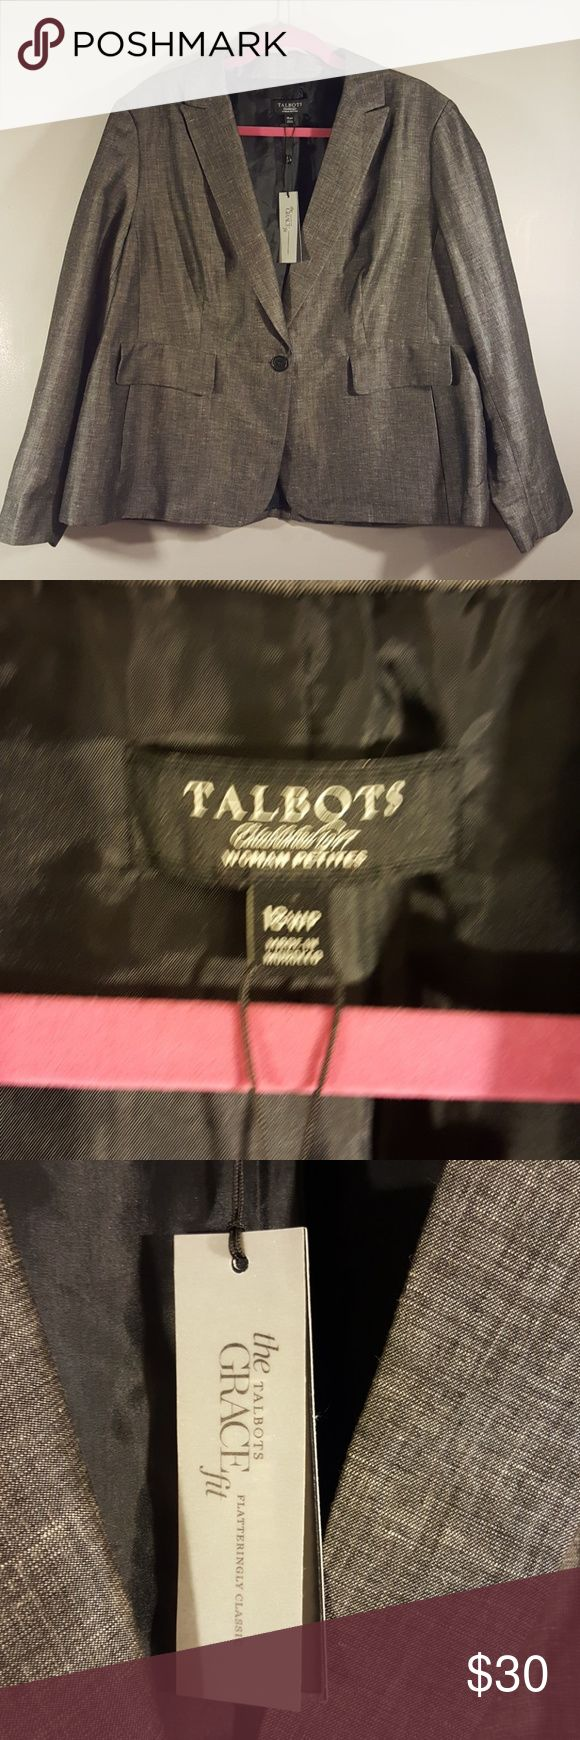 Talbots Woman Petite Blazer- Size 18wp Awesome blazer.  Gorgeous color. I purchased it as a suit set. I love the pants and skirt but I'm not a blazer gal!😉 NWOT Talbots Jackets & Coats Blazers